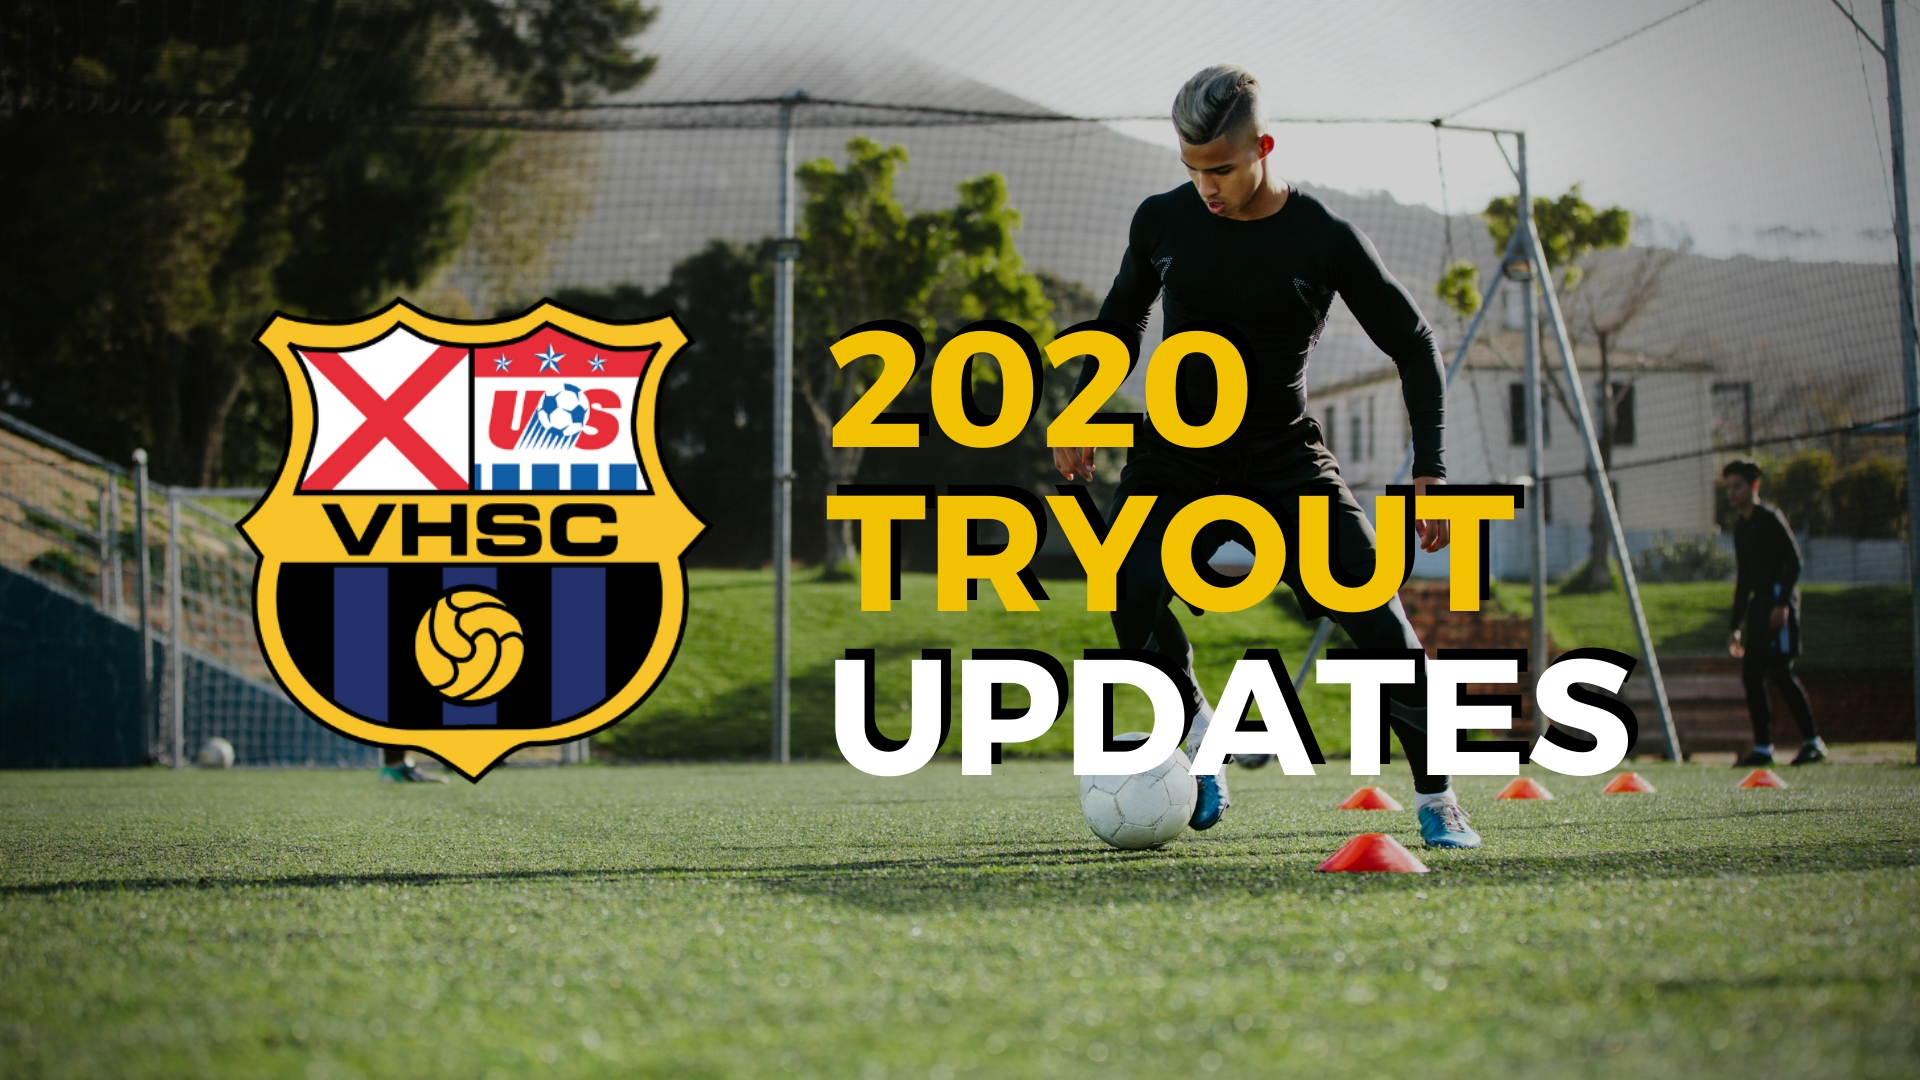 1920x1080 VHSC Tryout Updates